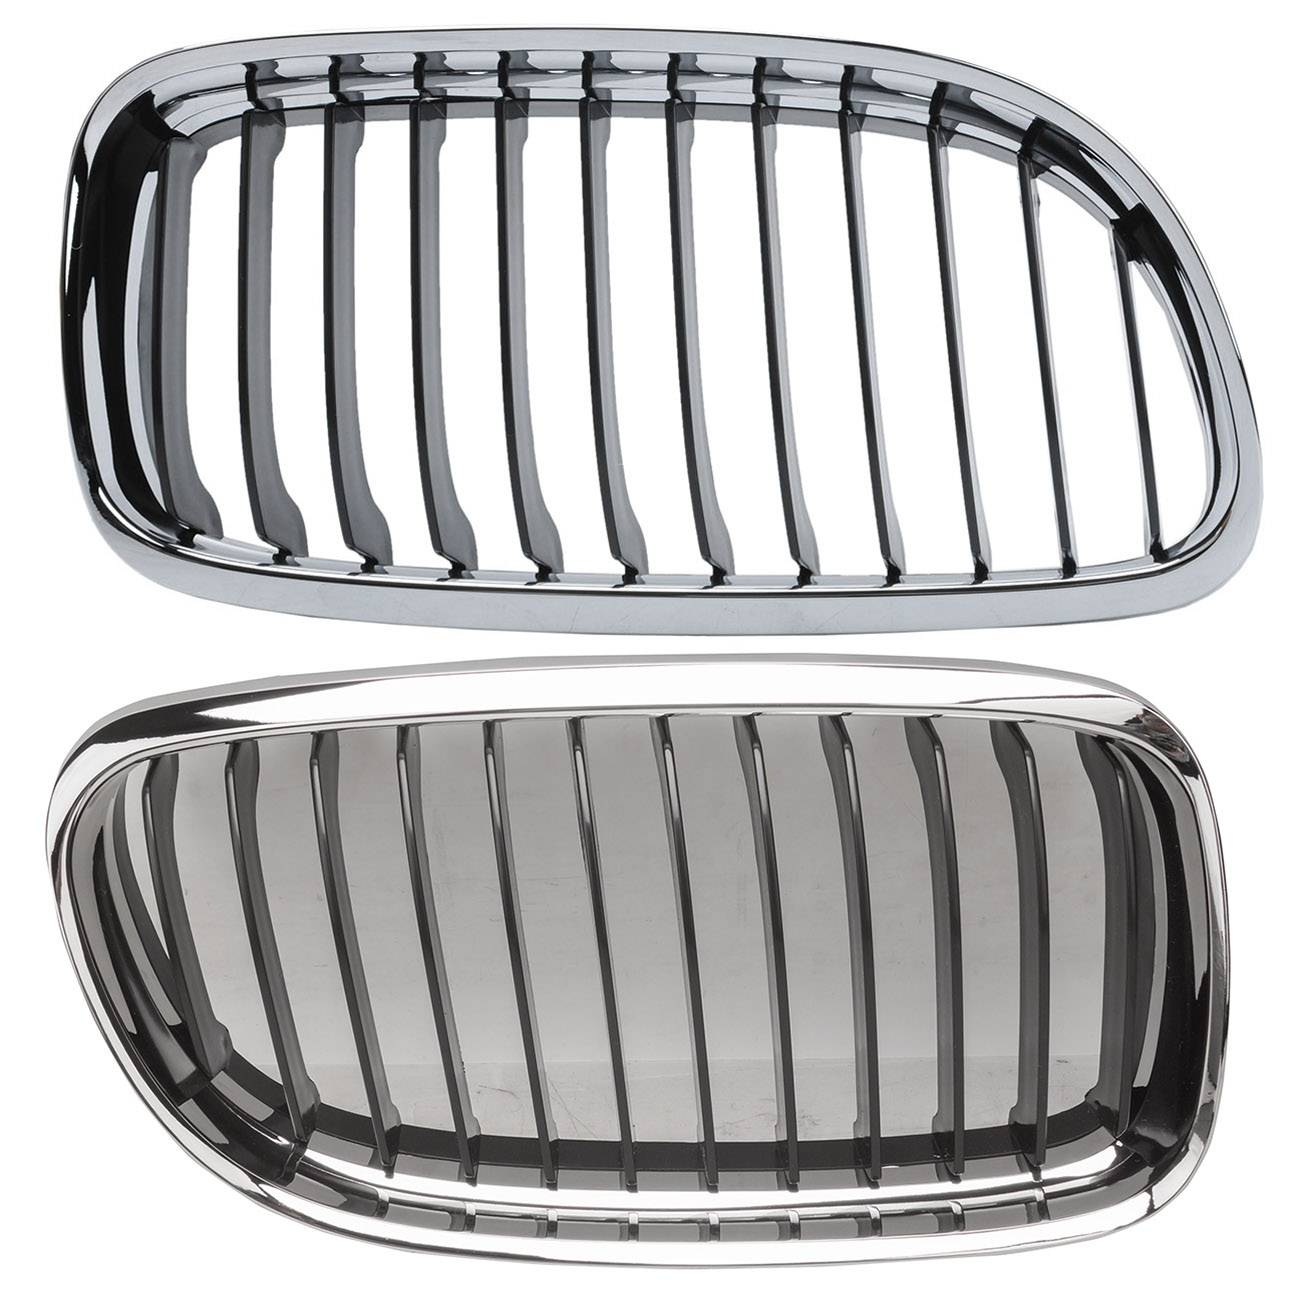 Bapmic-Set-Grill-Kidney-Grill-Left-Right-for-BMW-E90-320d-325-330-335i